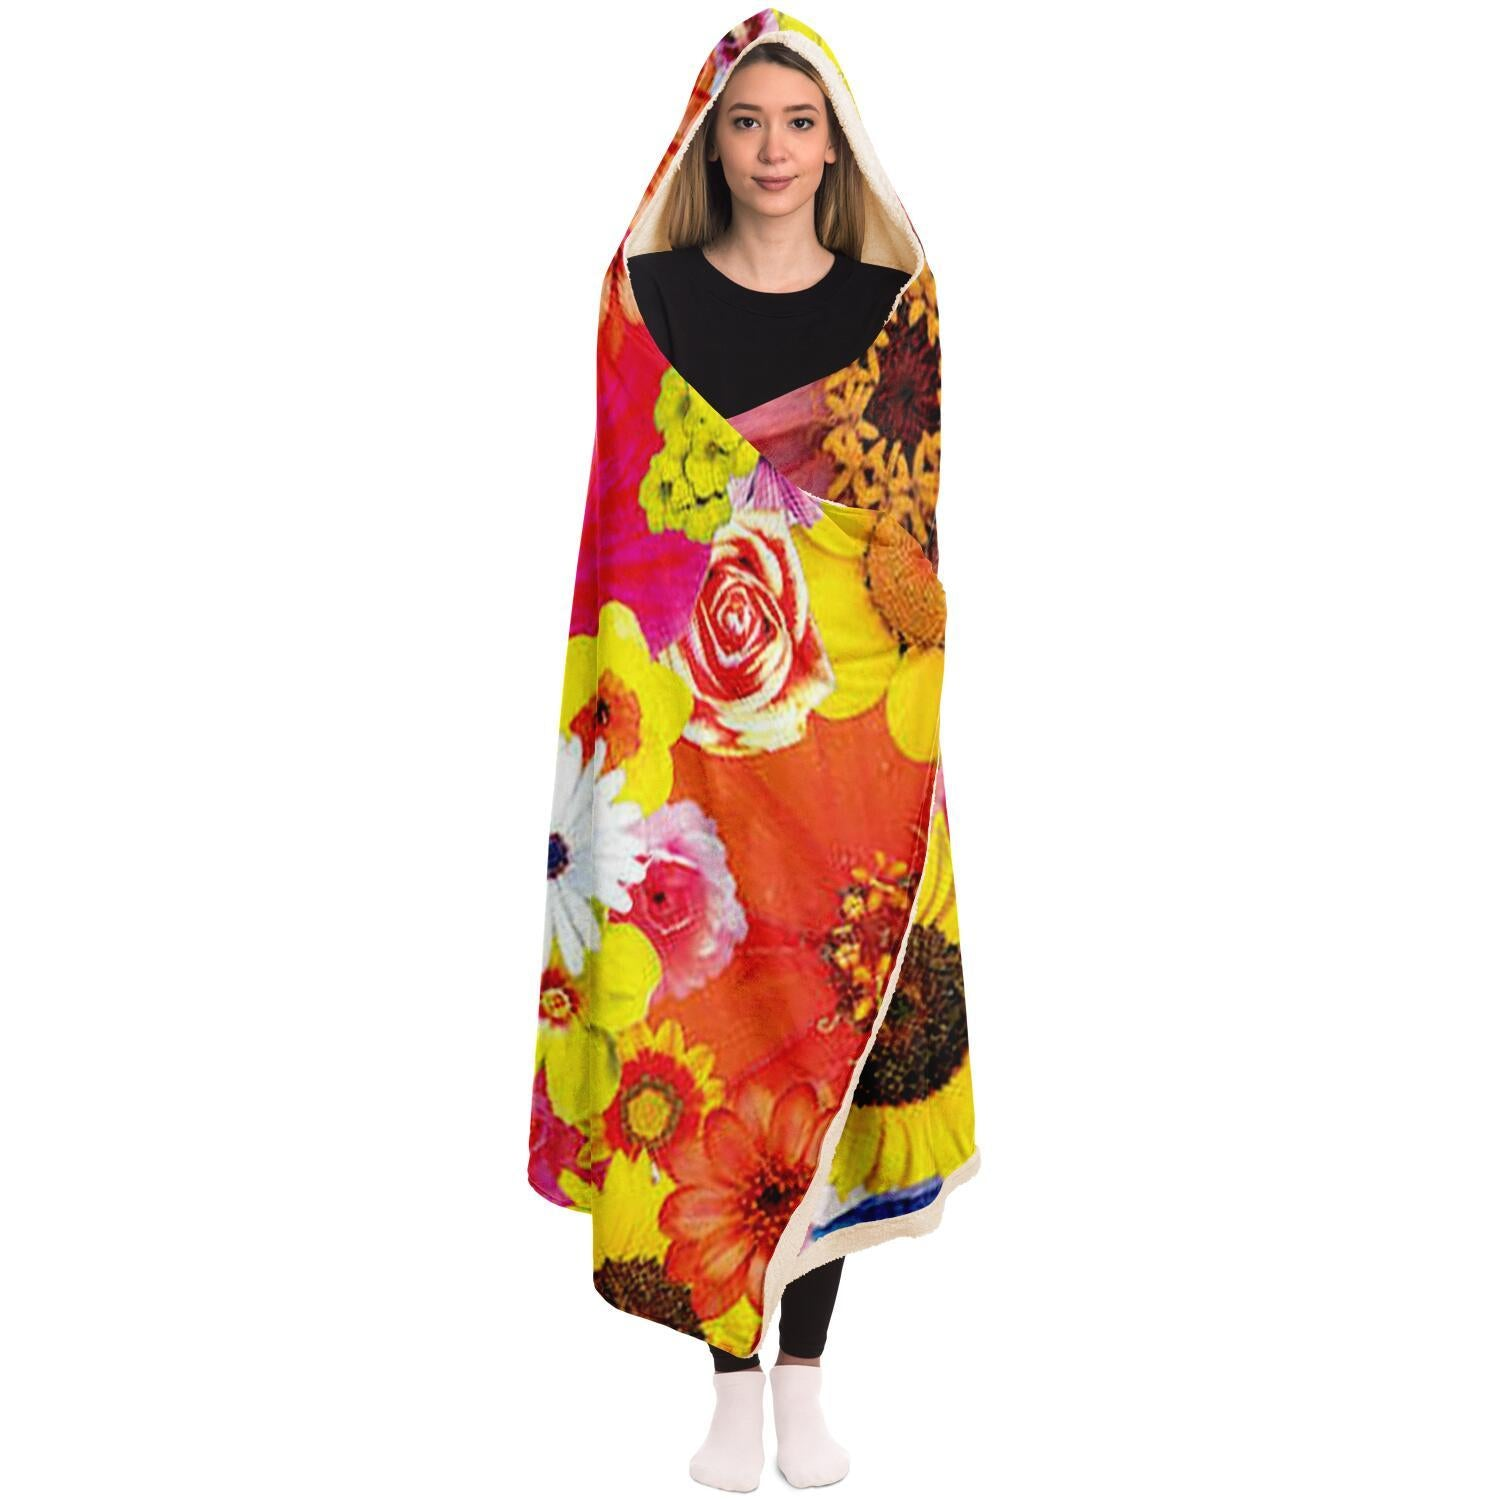 Flower Frida Hooded Blanket